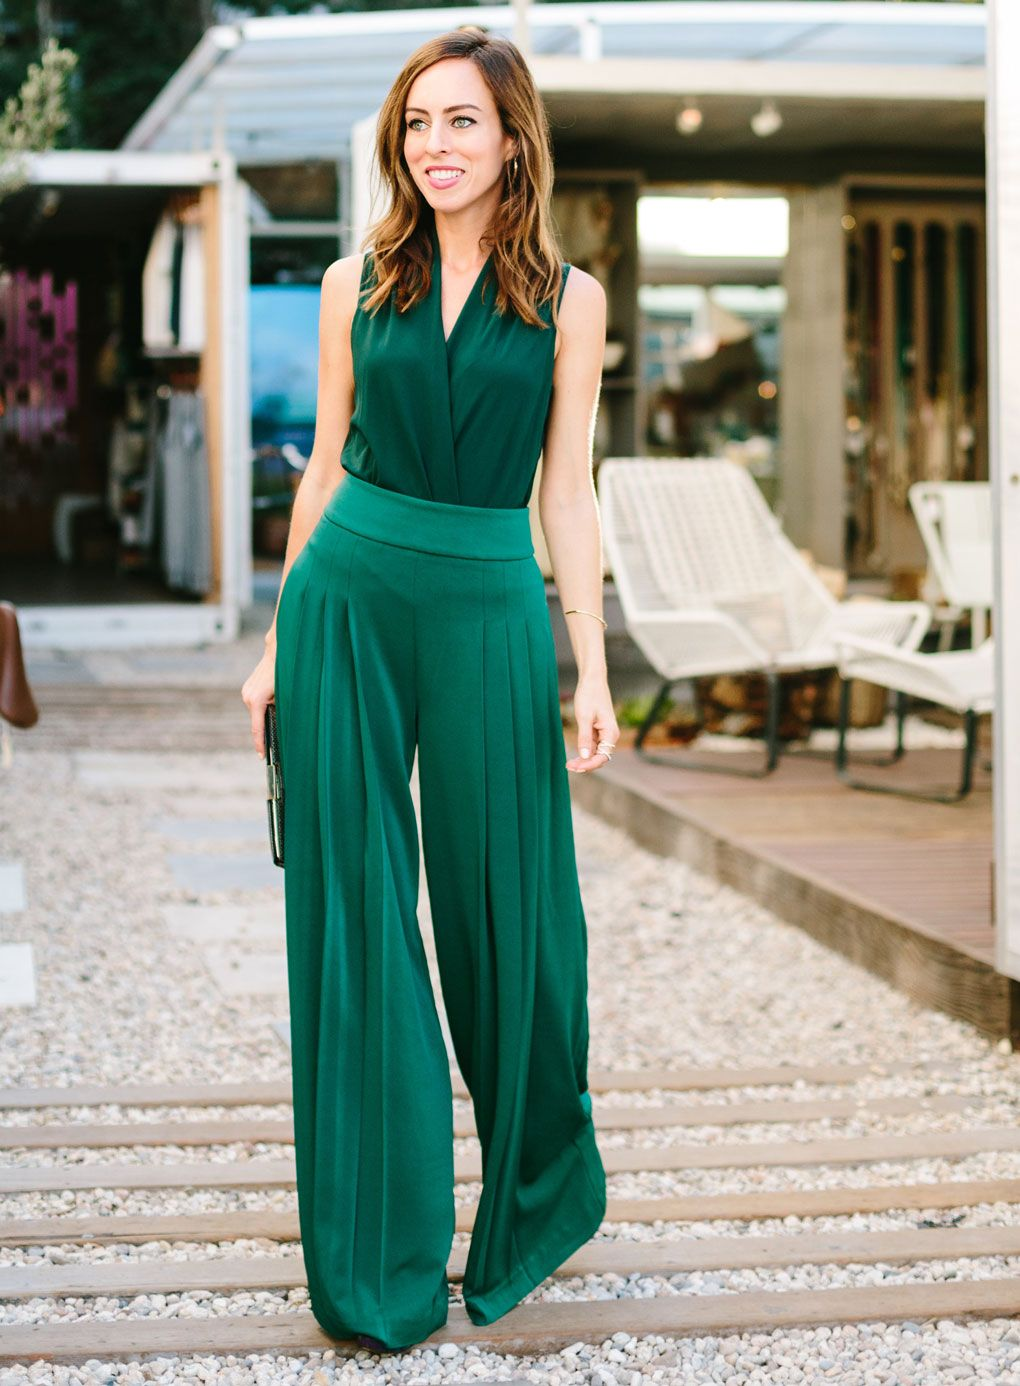 e18d28a27586 Sydne Style - Los Angeles fashion blogger and People StyleWatch contributor Sydne  Summer shows how to style emerald green